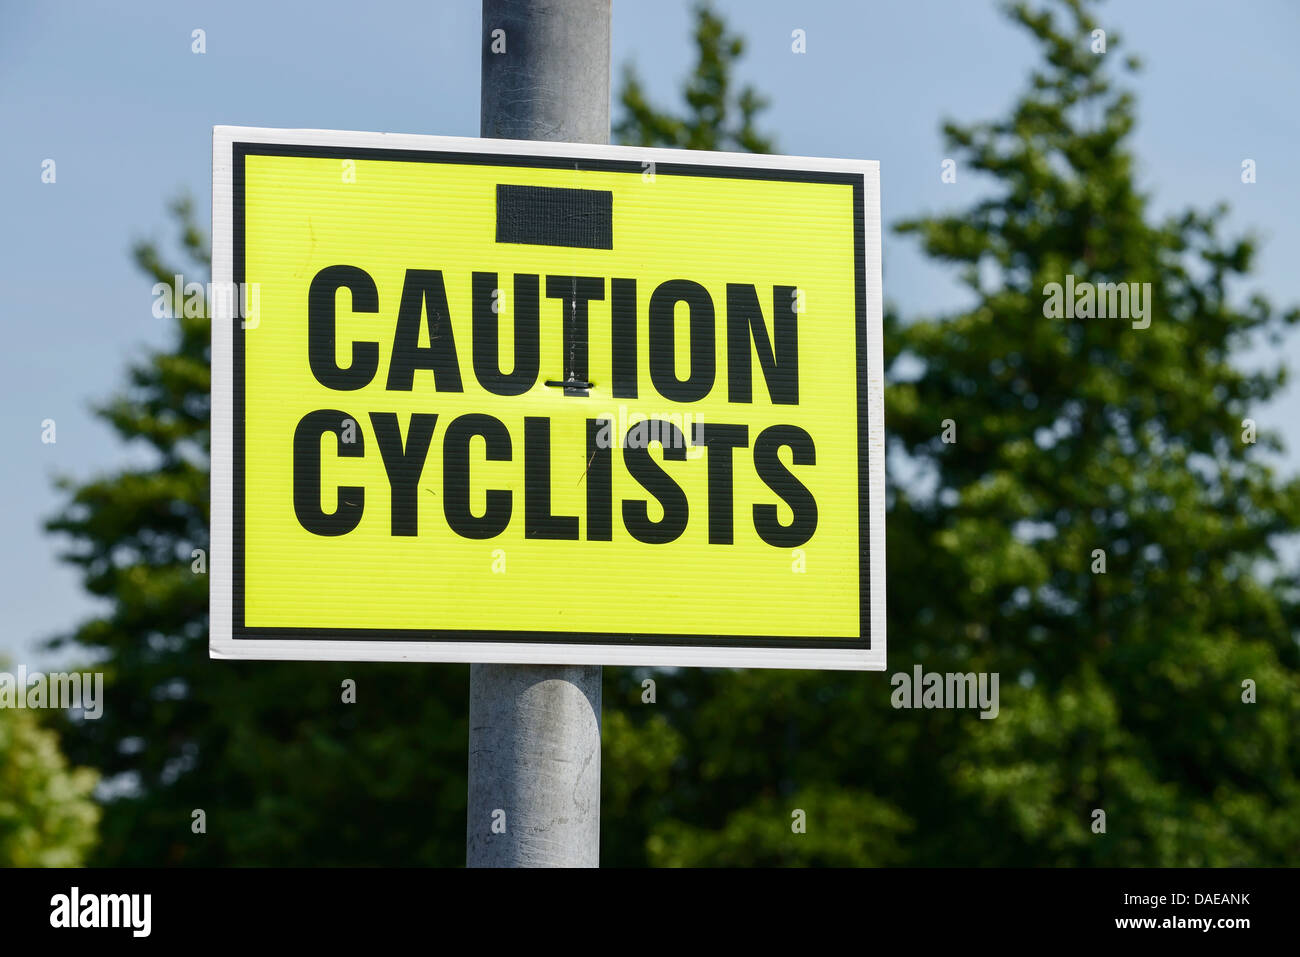 Caution Cyclists sign - Stock Image